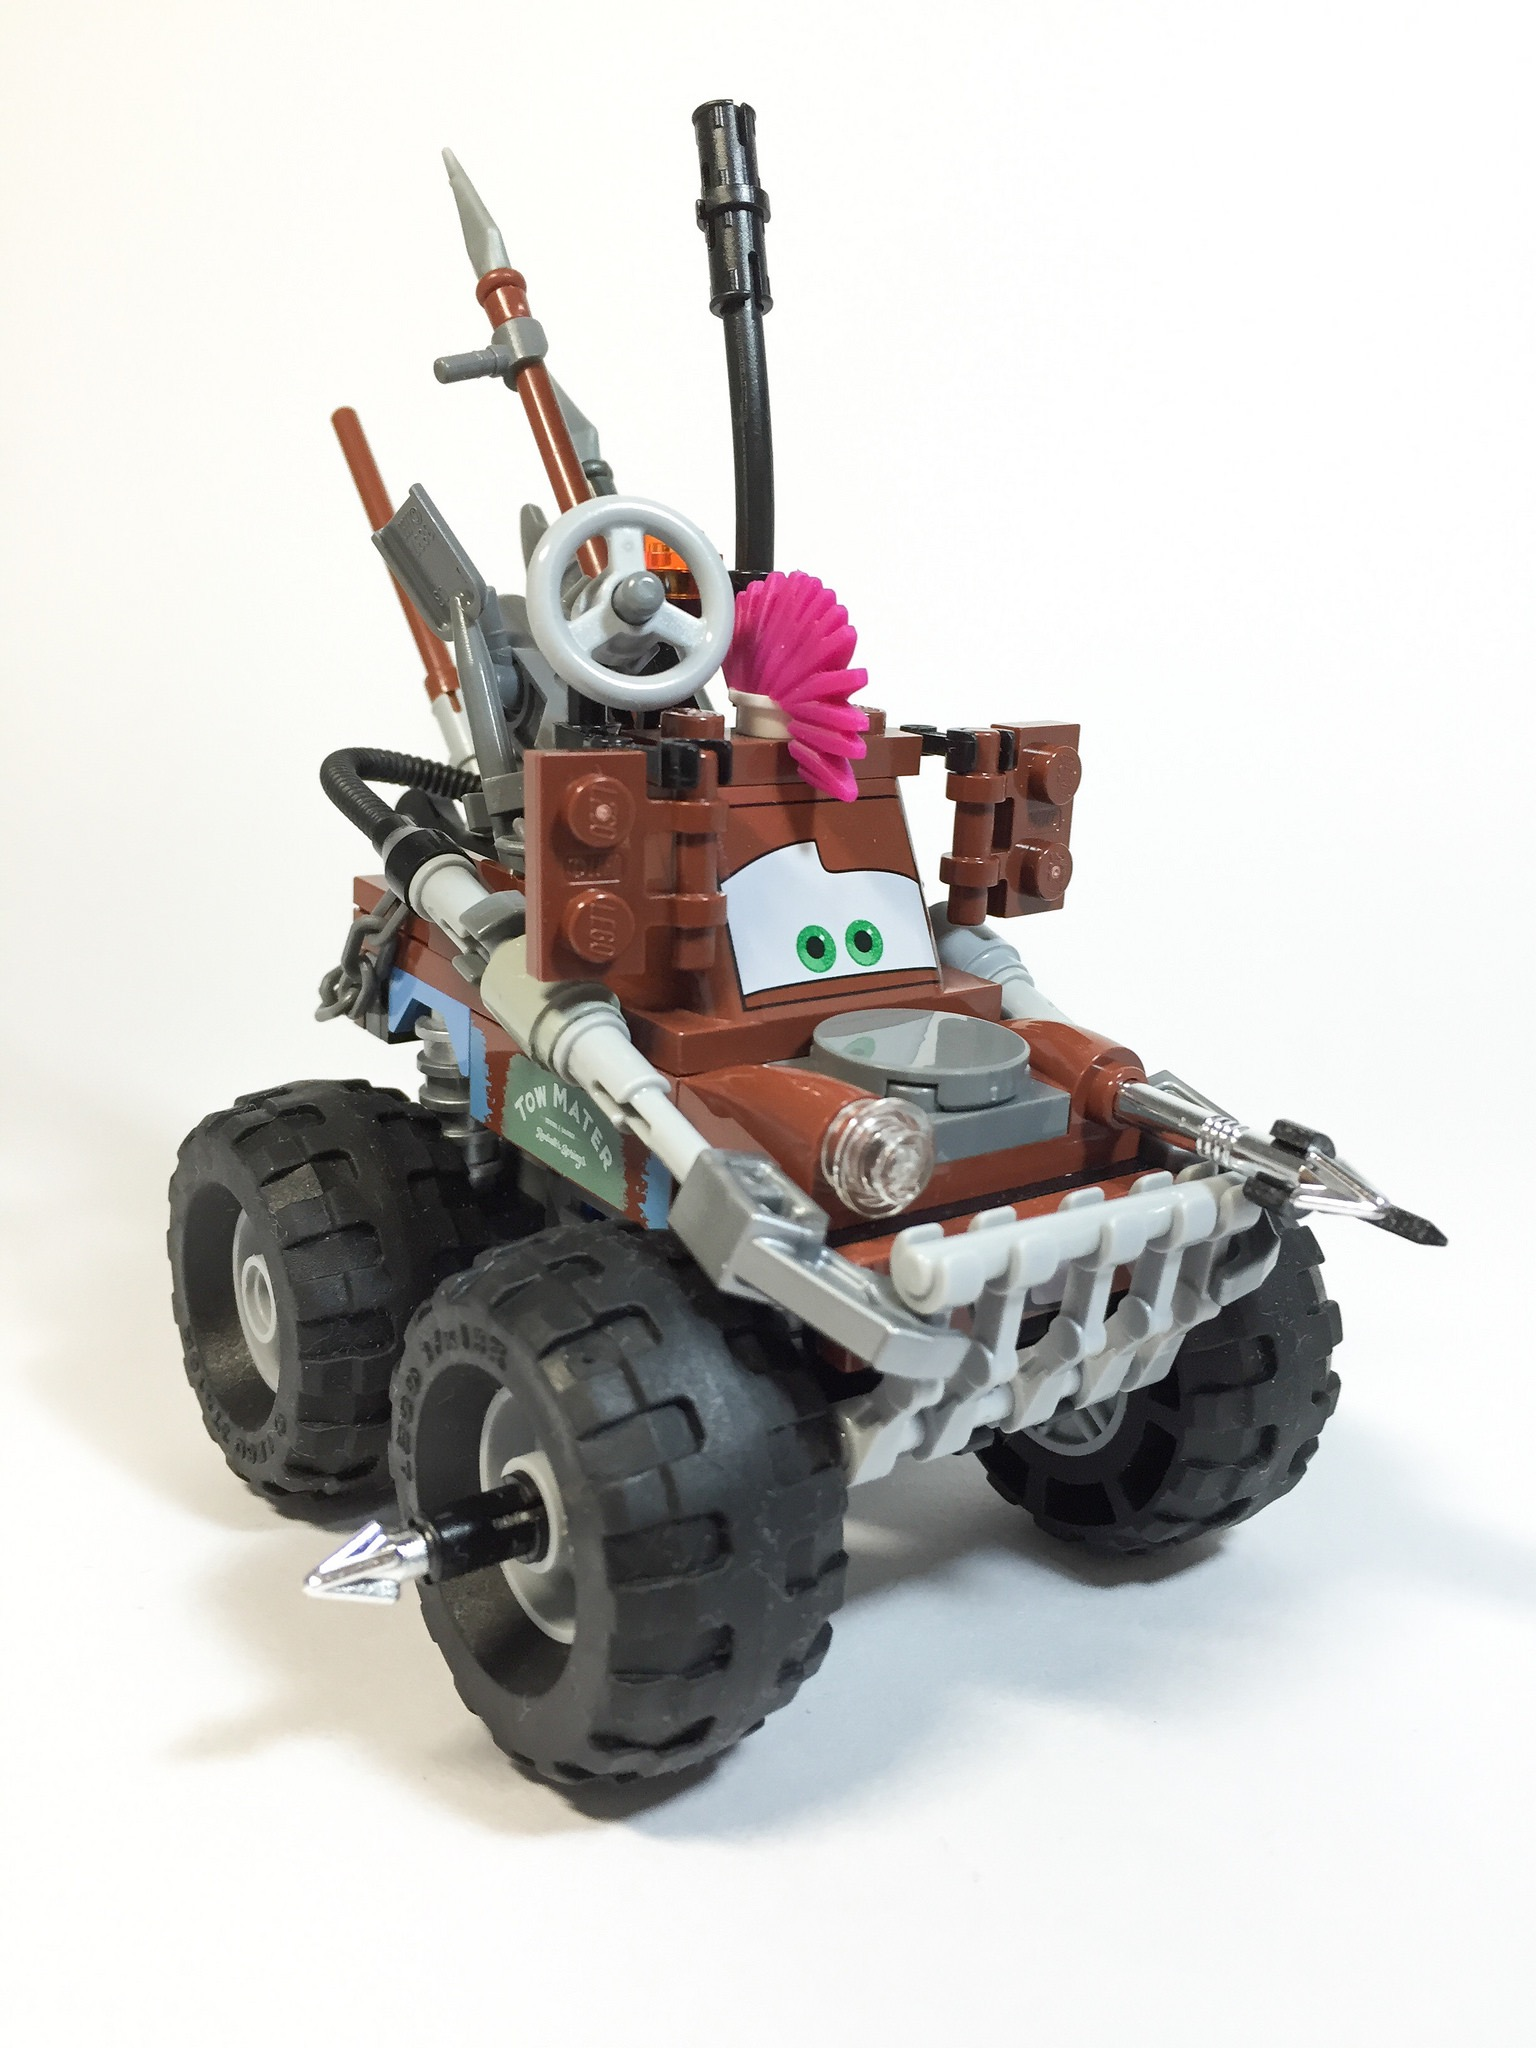 Mad Max Fury Road In Lego